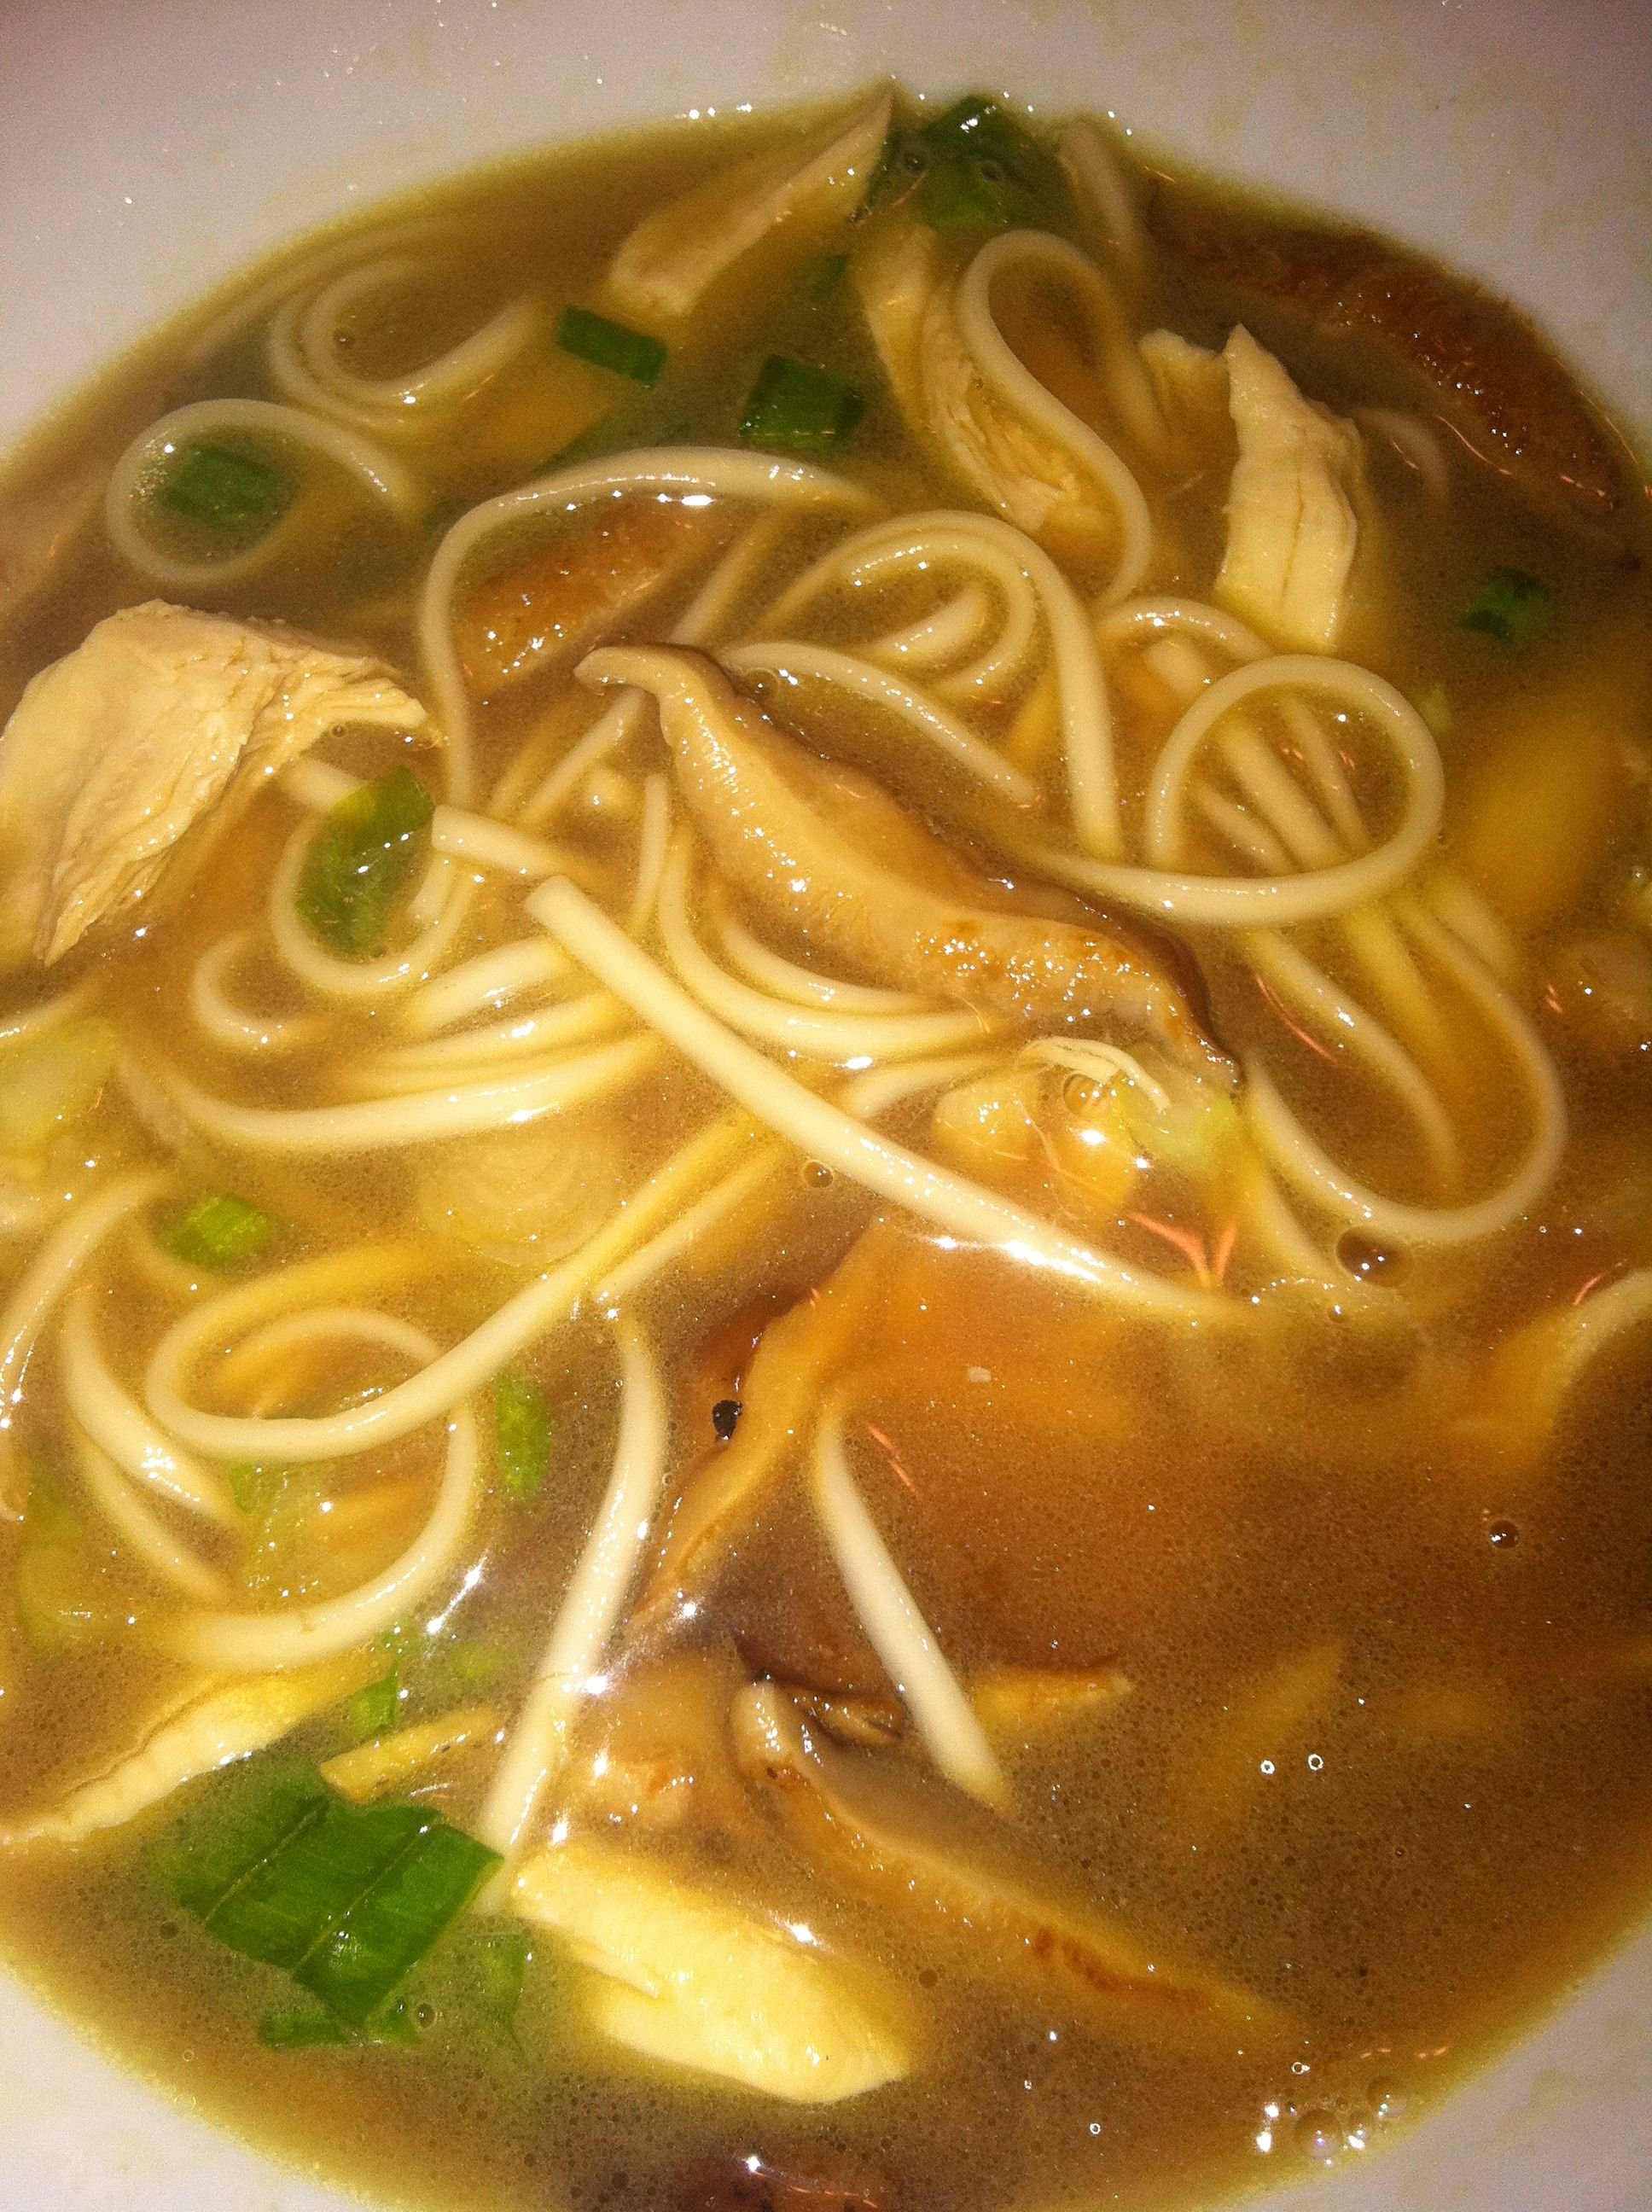 Comforting chicken soup recipes udon soup recipe recipe finder comforting chicken soup recipes forumfinder Gallery